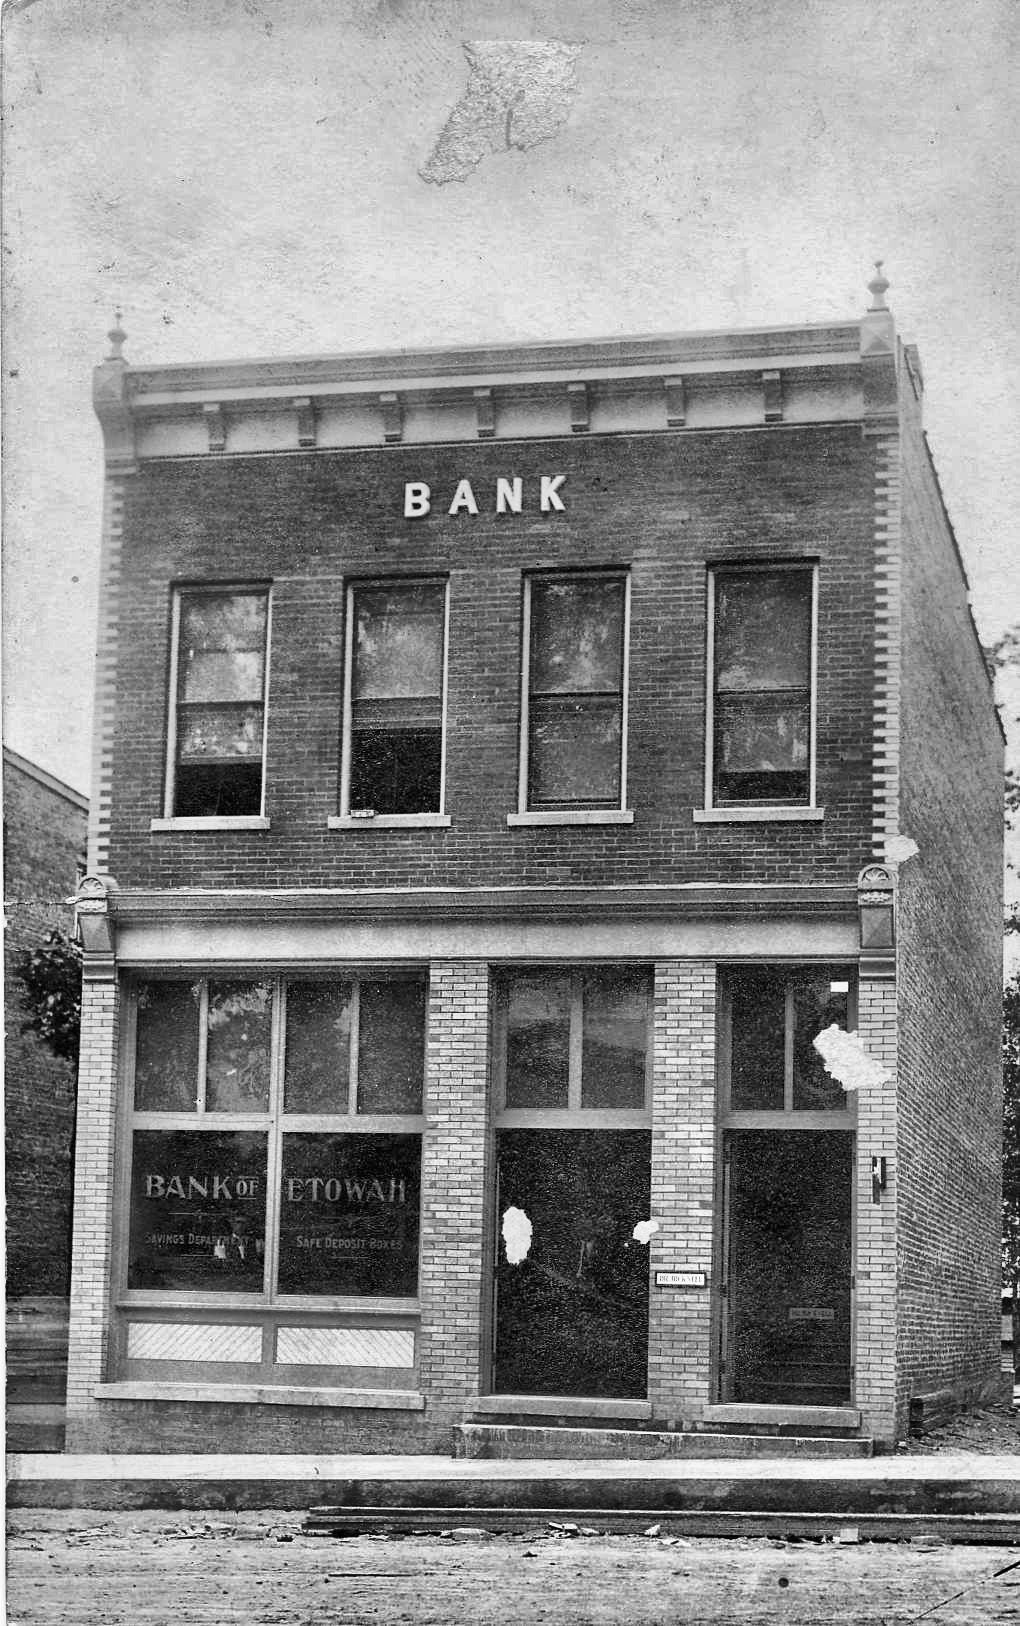 Bank of Etowah  1911  - Copy - Copy - Copy